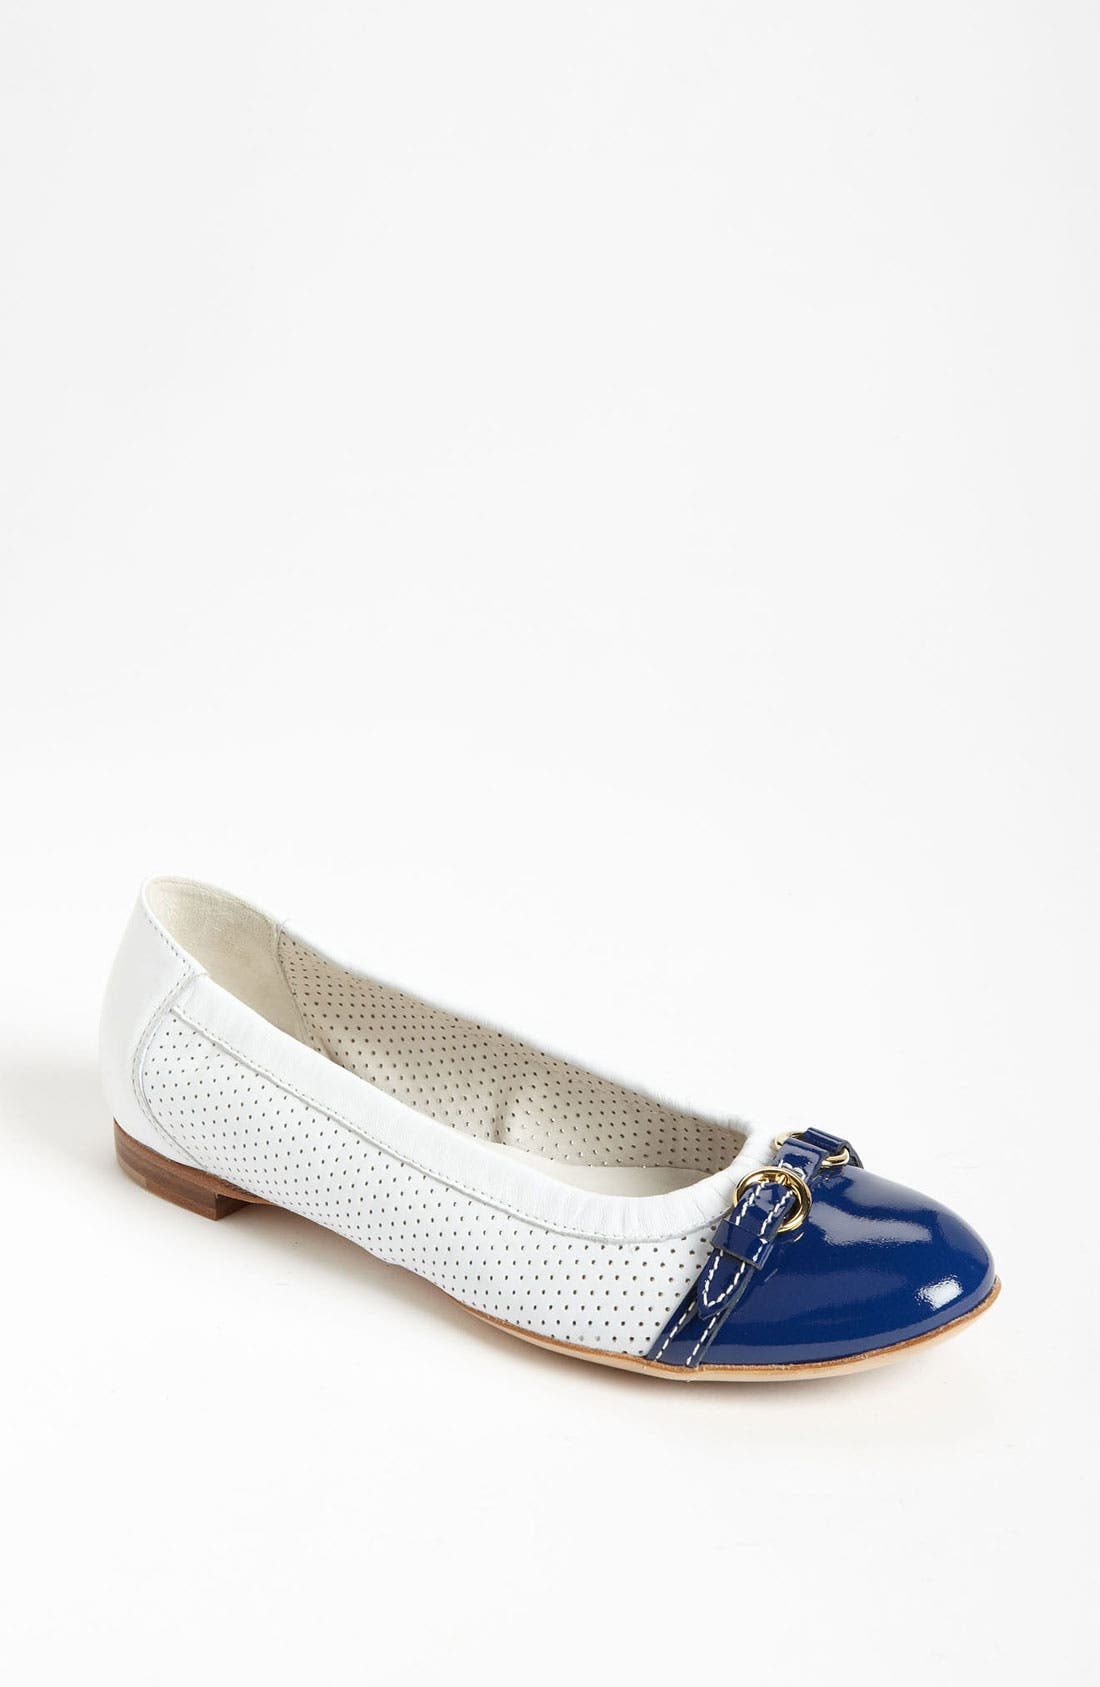 Alternate Image 1 Selected - Attilio Giusti Leombruni Perforated Toe Cap Ballet Flat